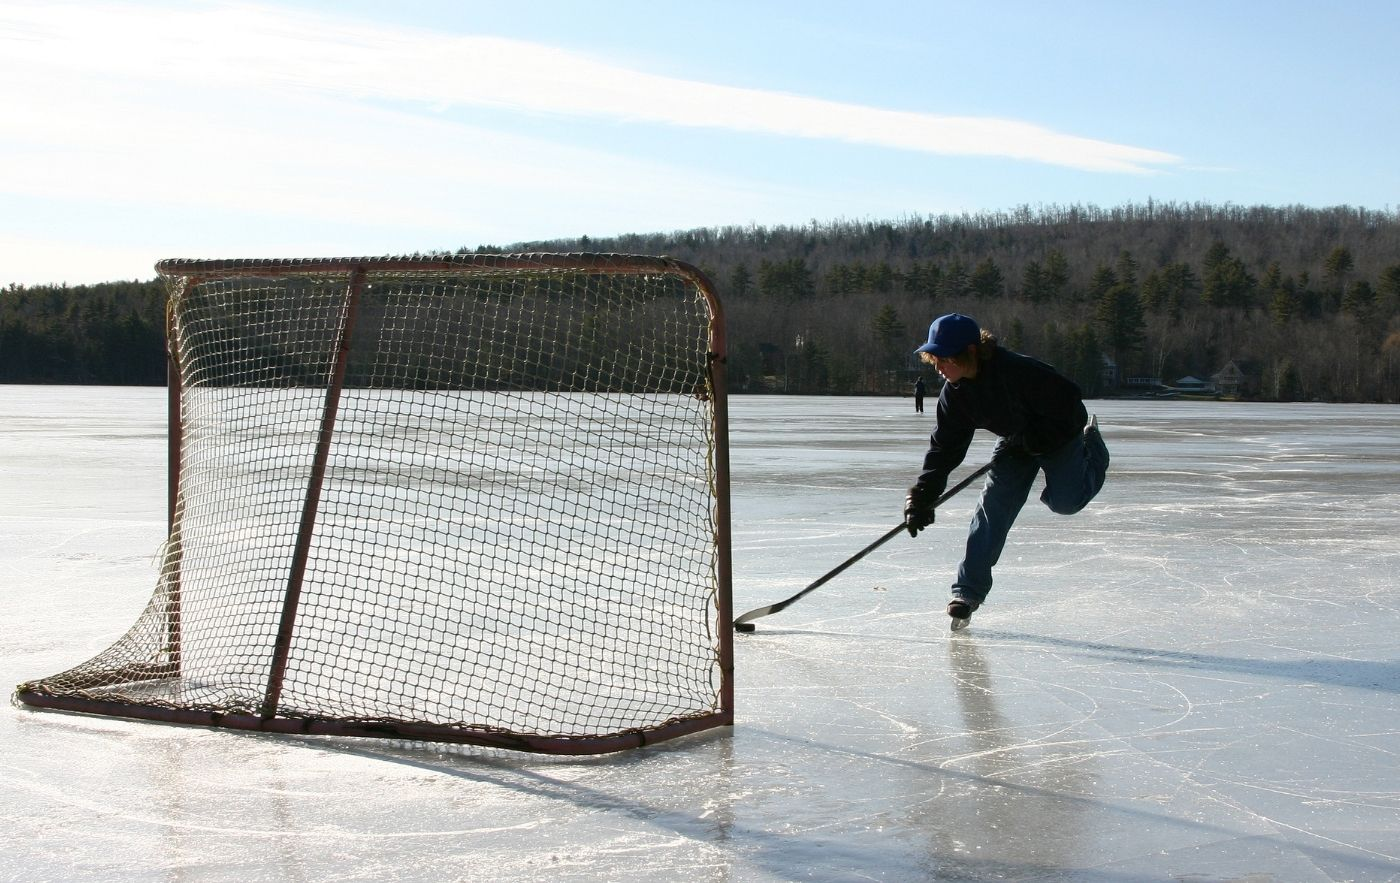 Skater playing hockey on a pond in upstate NY.